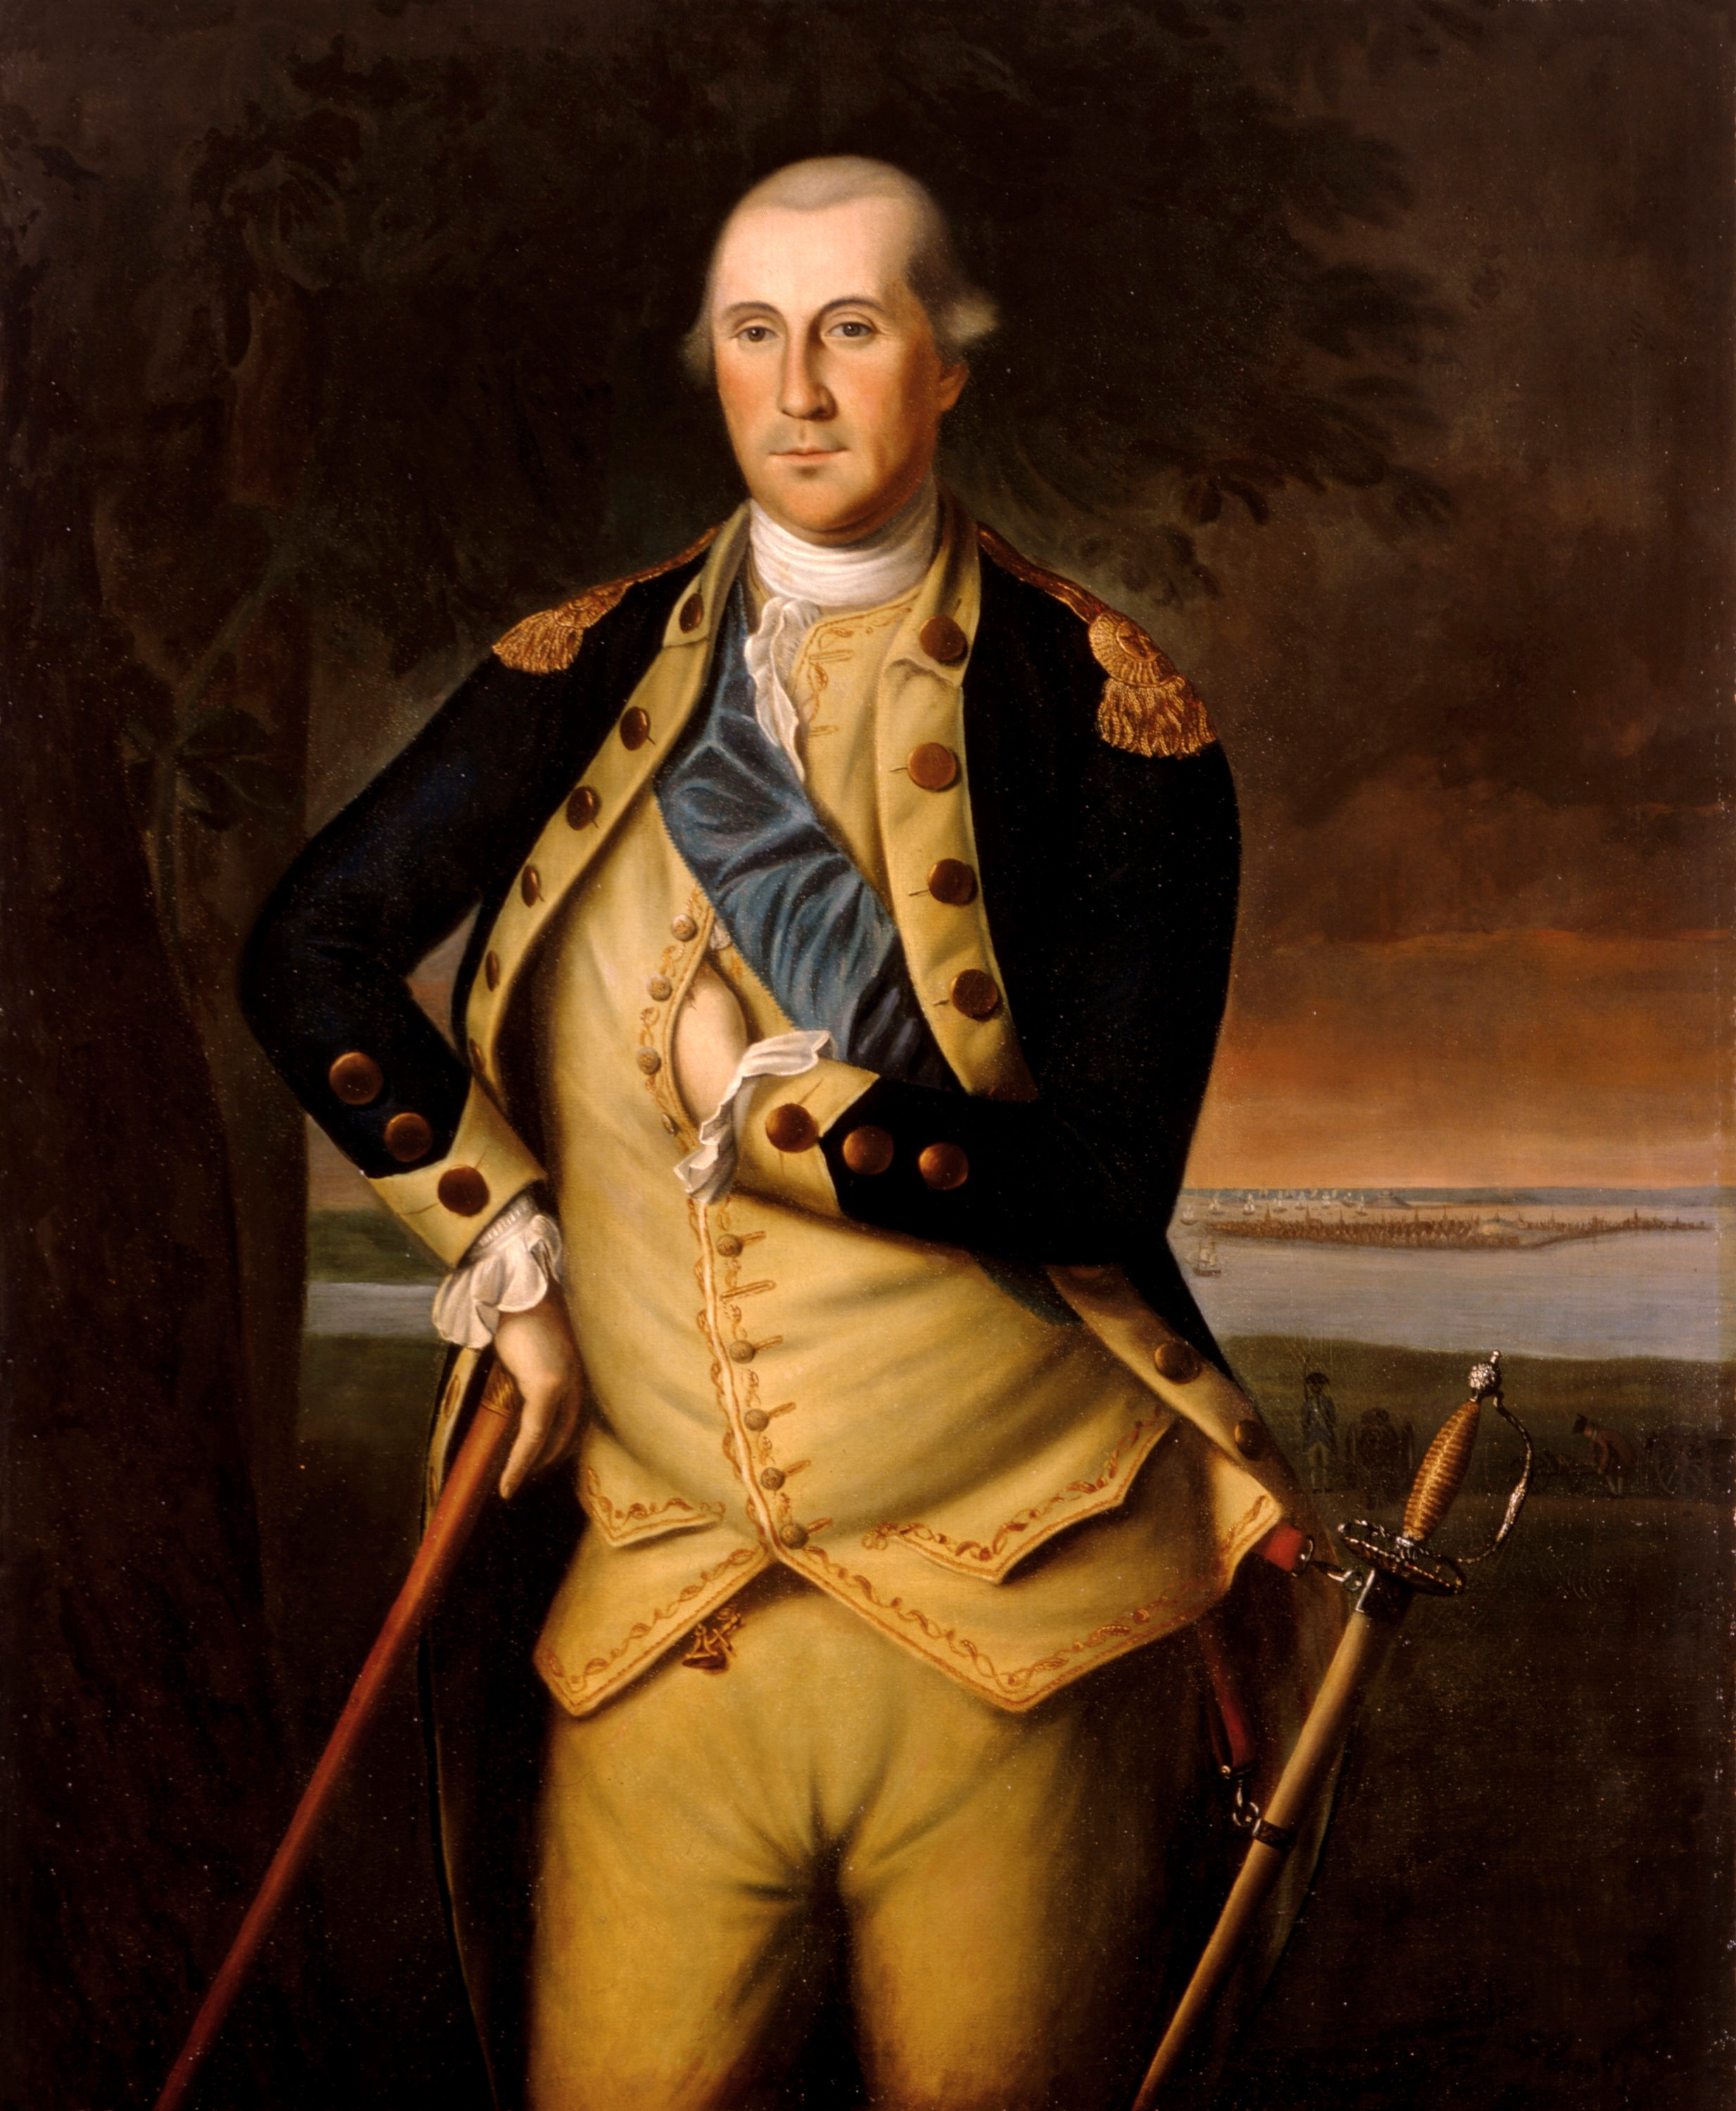 George Washington, by oil on canvas painting by Charles Willson Peale, 1776. White House copy of the original 1776 painting